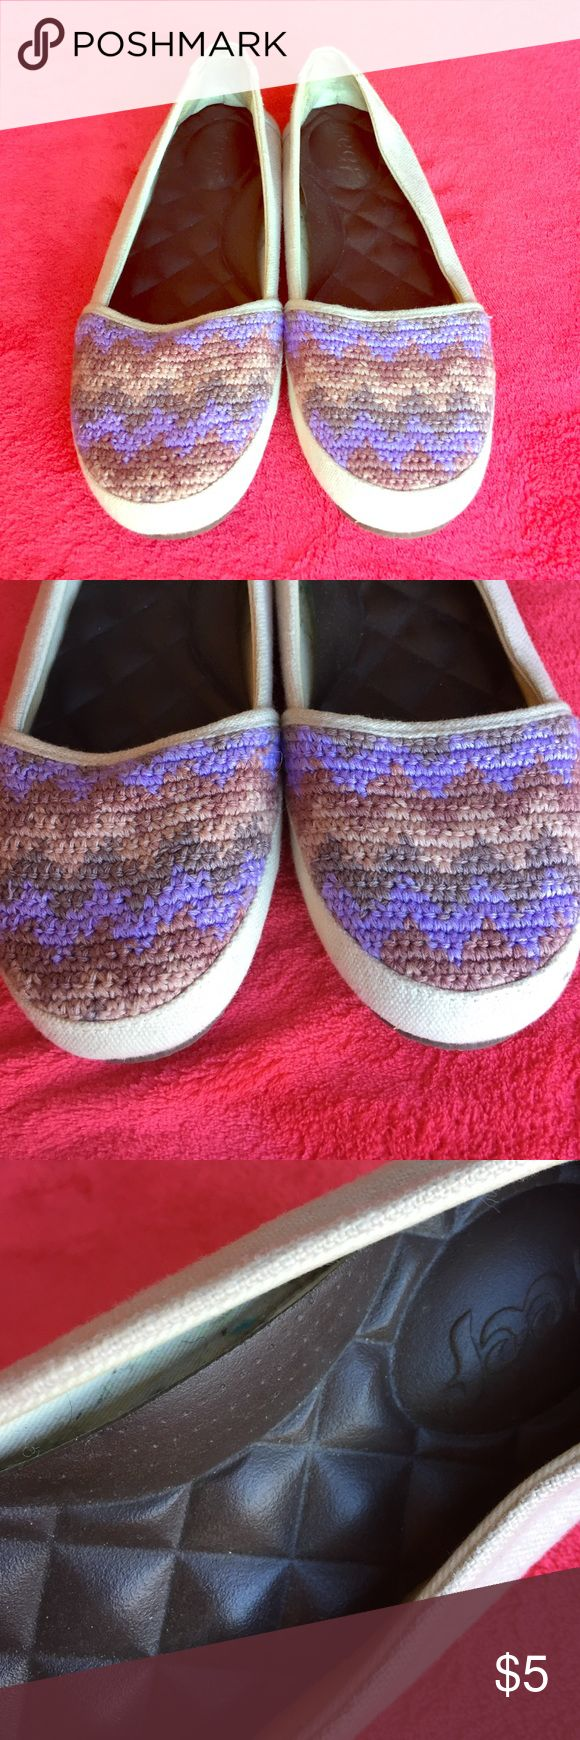 Reef slippers size 6.5 These Reef slippers have wonderful cushion on the sole for comfortable walking. They have been worn outside, so the sole is dirty. The inside of the shoe's glue has come unstuck, as seen in pictures. Reef Shoes Slippers